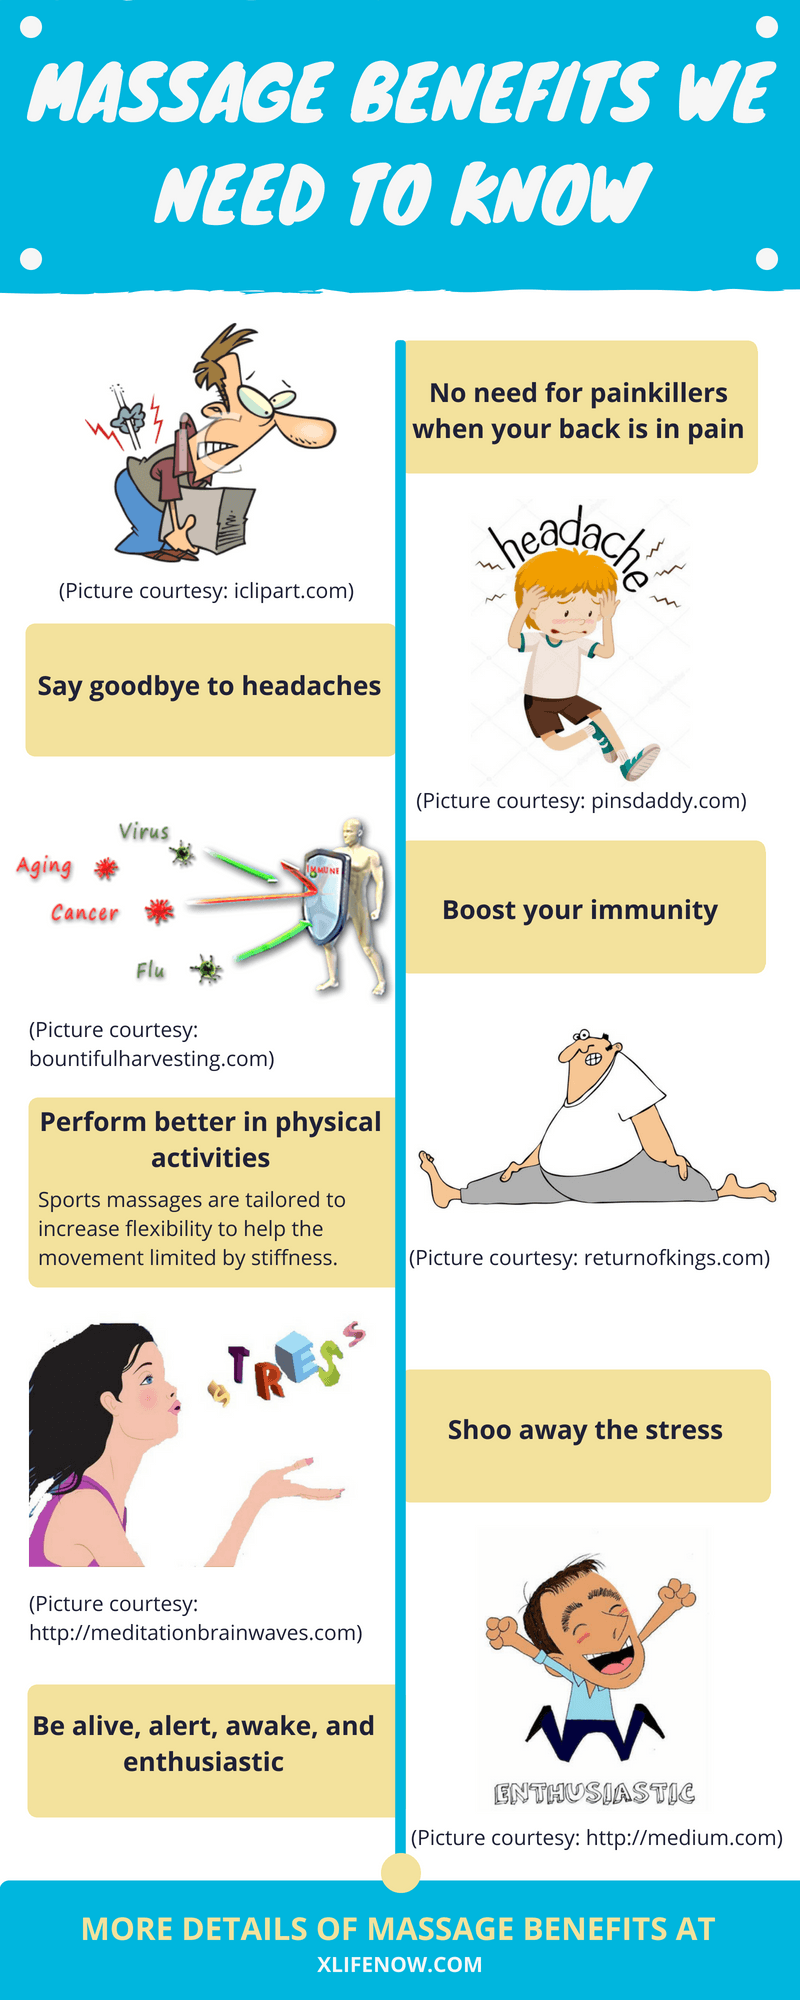 Massage Benefits We Need to Know Infographic